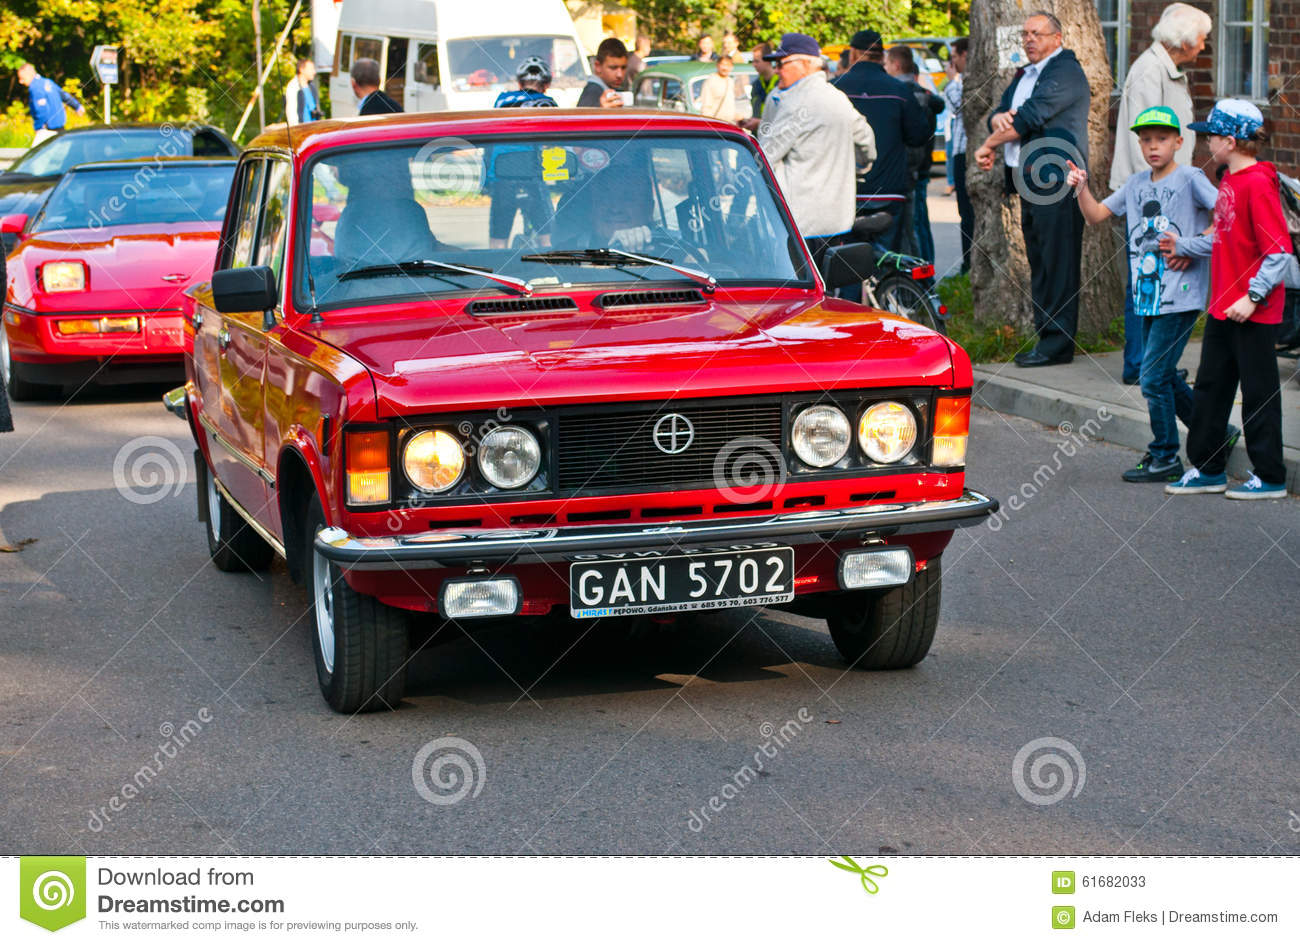 old classic car polski fiat 126p on a street parade editorial photo 62150021. Black Bedroom Furniture Sets. Home Design Ideas